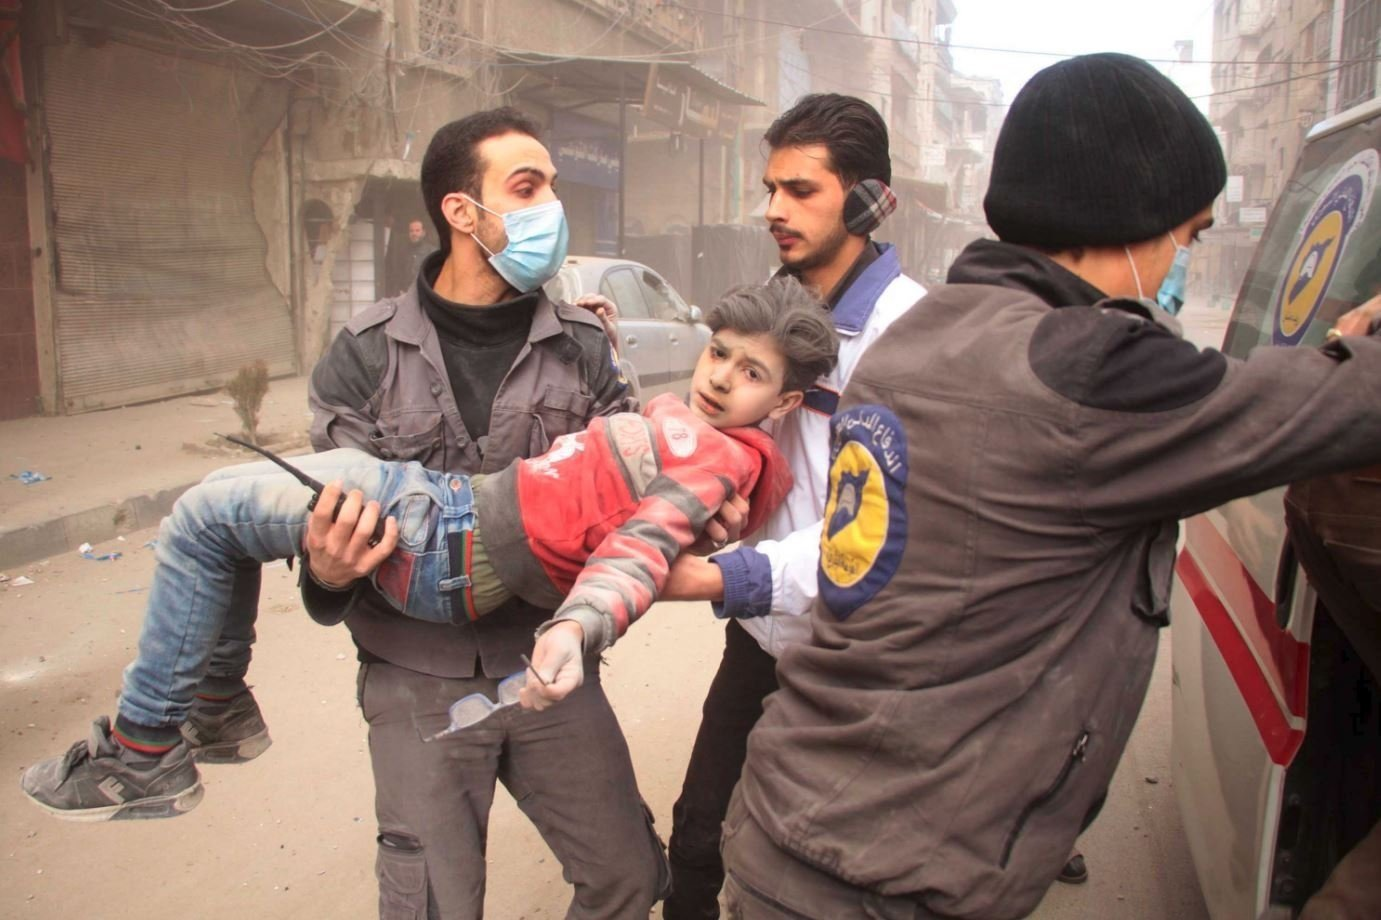 The White Helmets carry an injured child after strikes this week in Douma in Syria's Eastern Ghouta area.